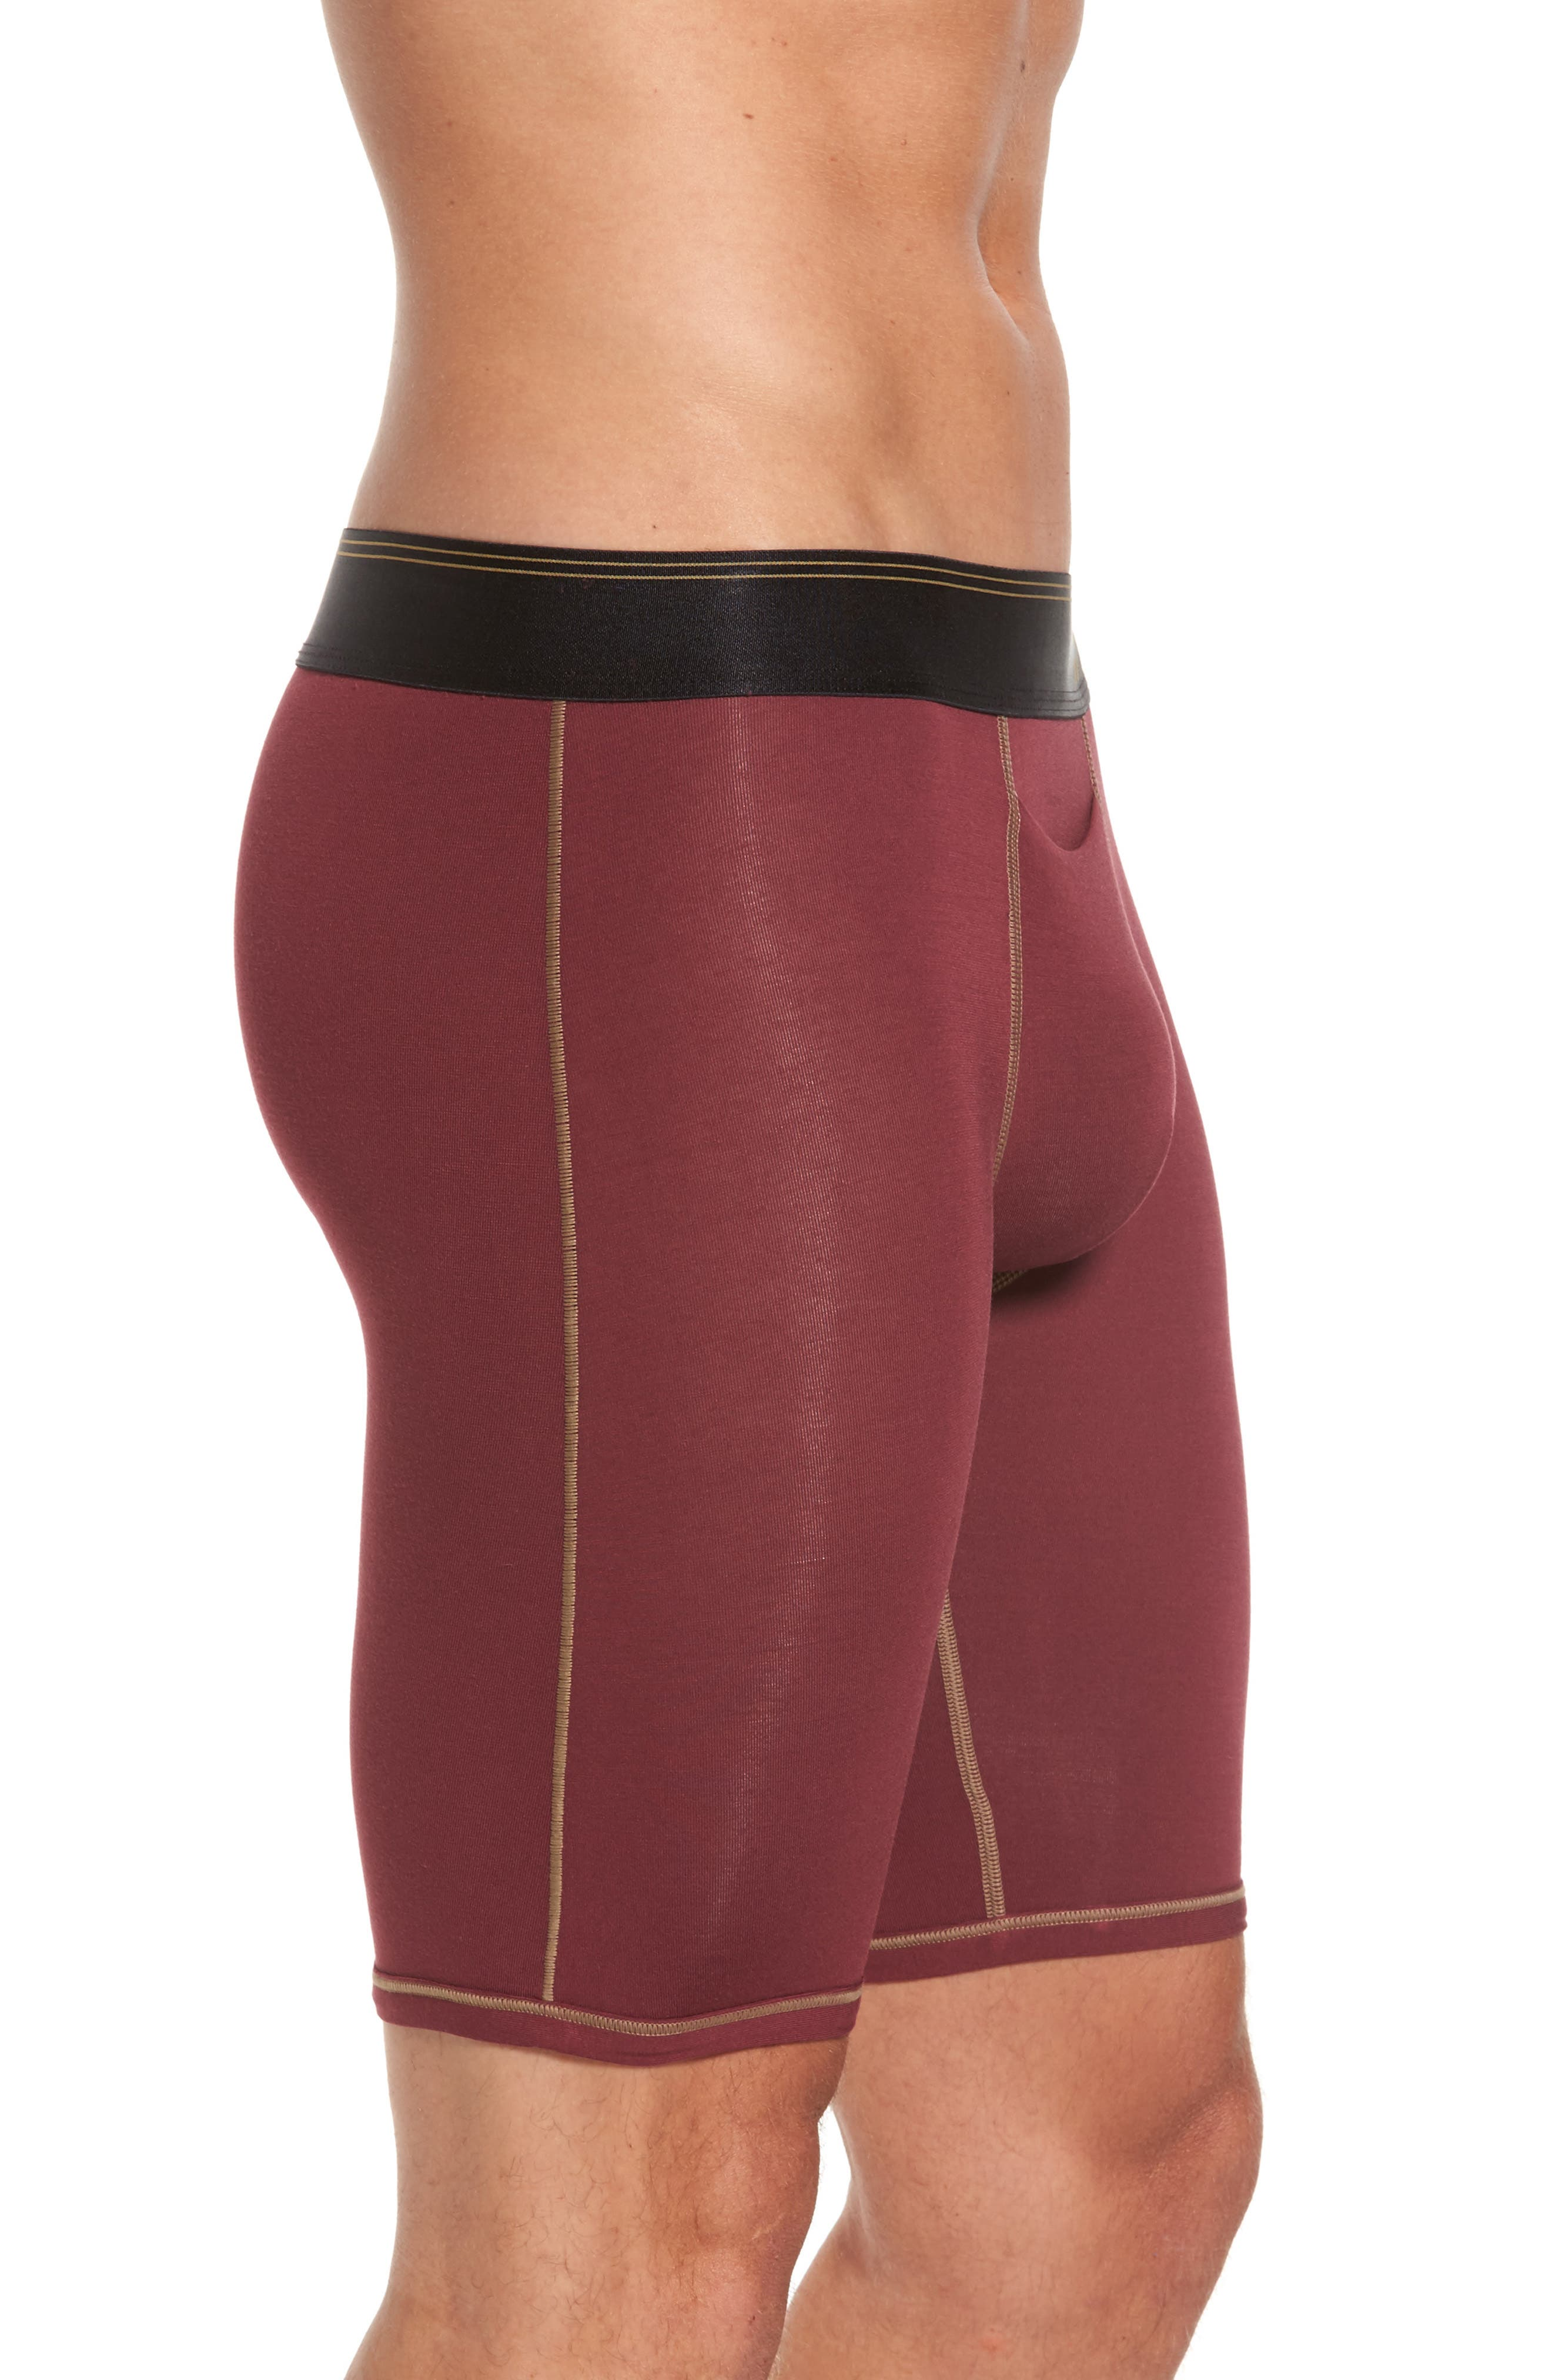 Second Skin Holiday Boxer Briefs,                             Alternate thumbnail 9, color,